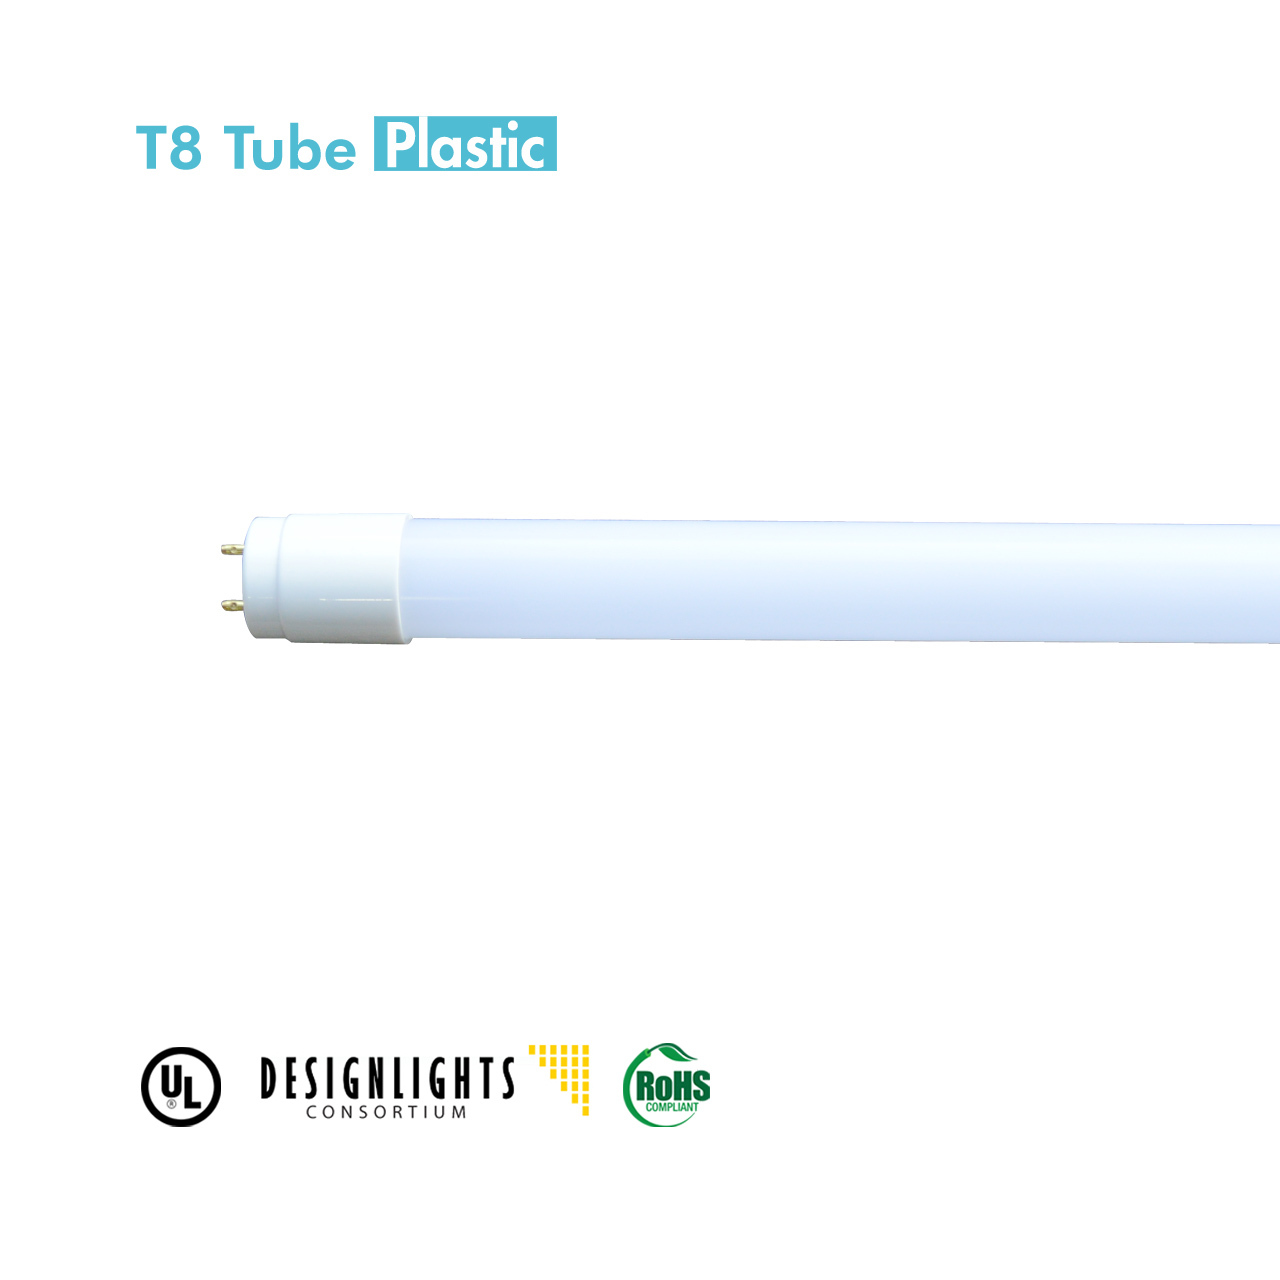 LED T8 Tube 2ft 9W 4000K. Base G13, 110-277V, CRI 80, Lumen 990, Lifetime 50,000hrs, 5 Year Limited Warraty